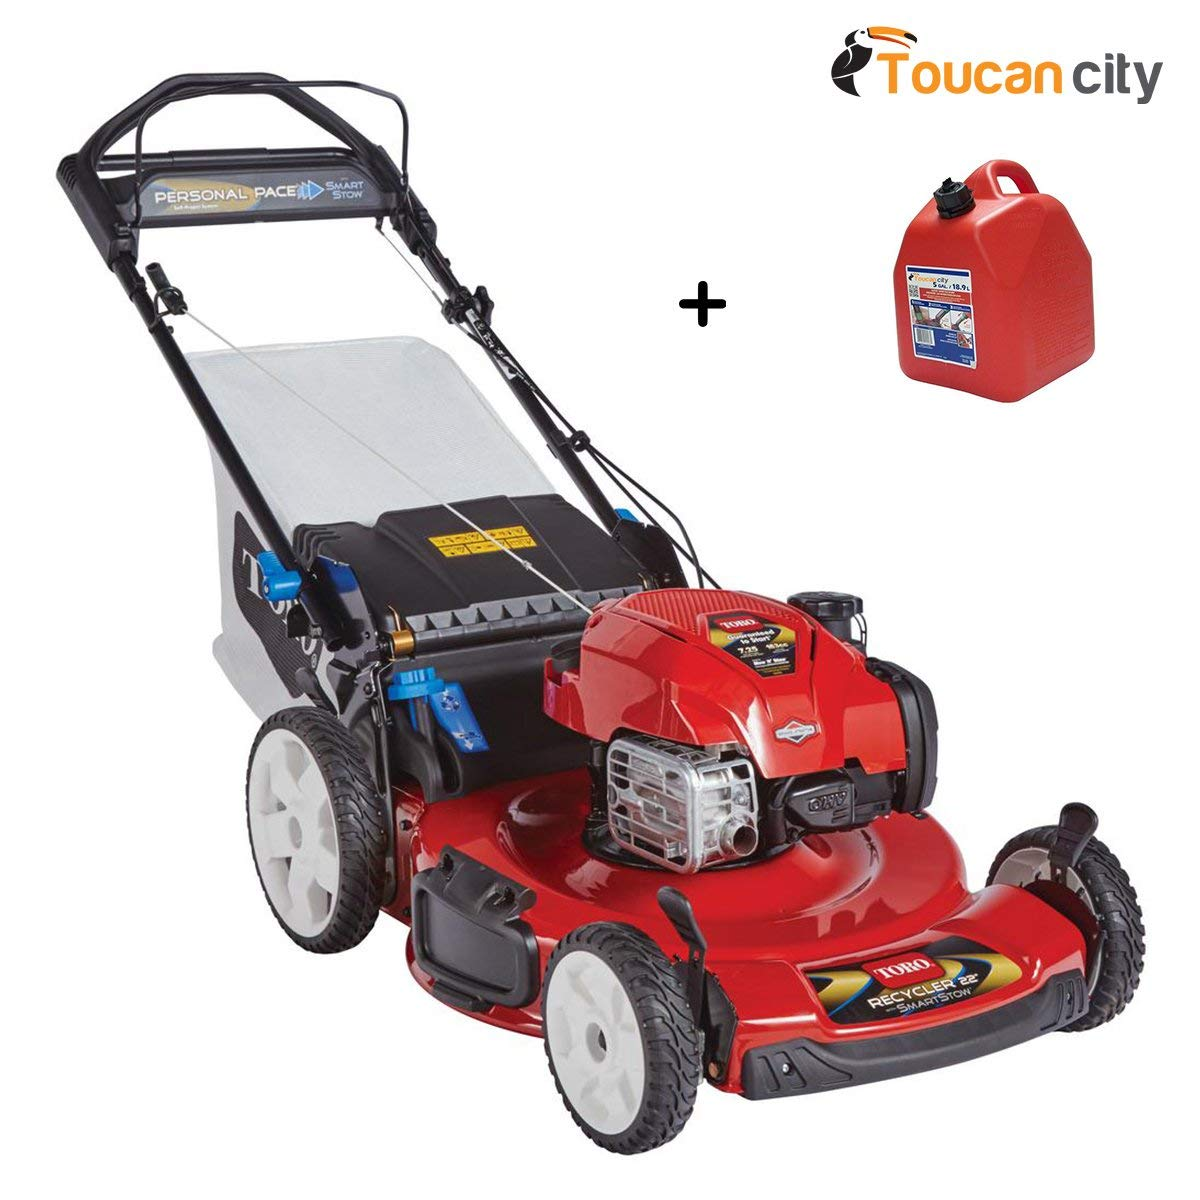 Cheap Toro 22 Recycler Parts, find Toro 22 Recycler Parts